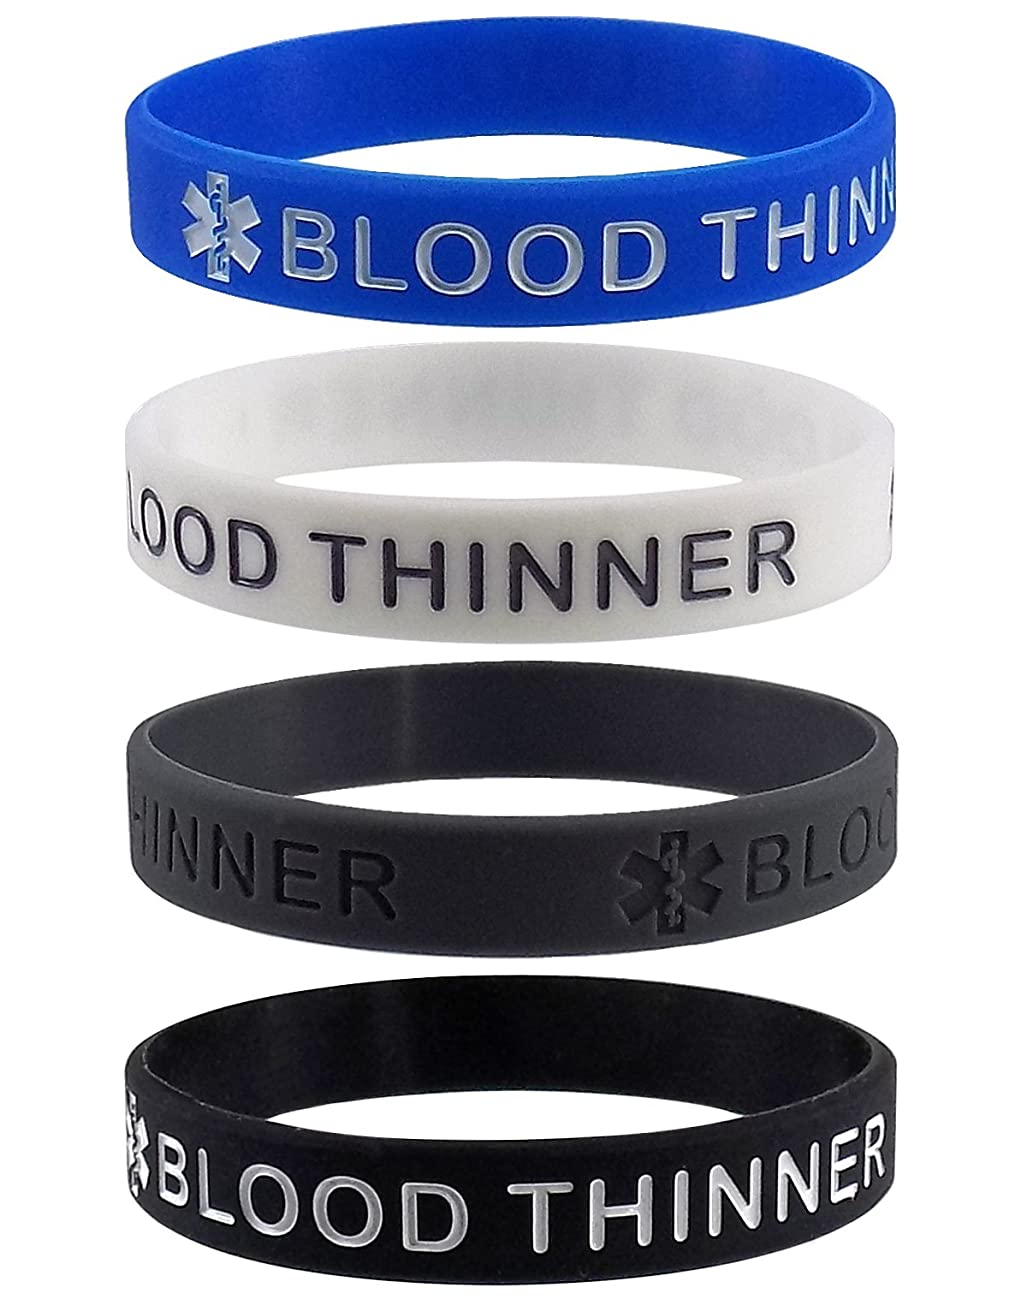 Max Petals Blood THINNER Medical Alert ID Silicone Bracelet Wristbands 4 Pack